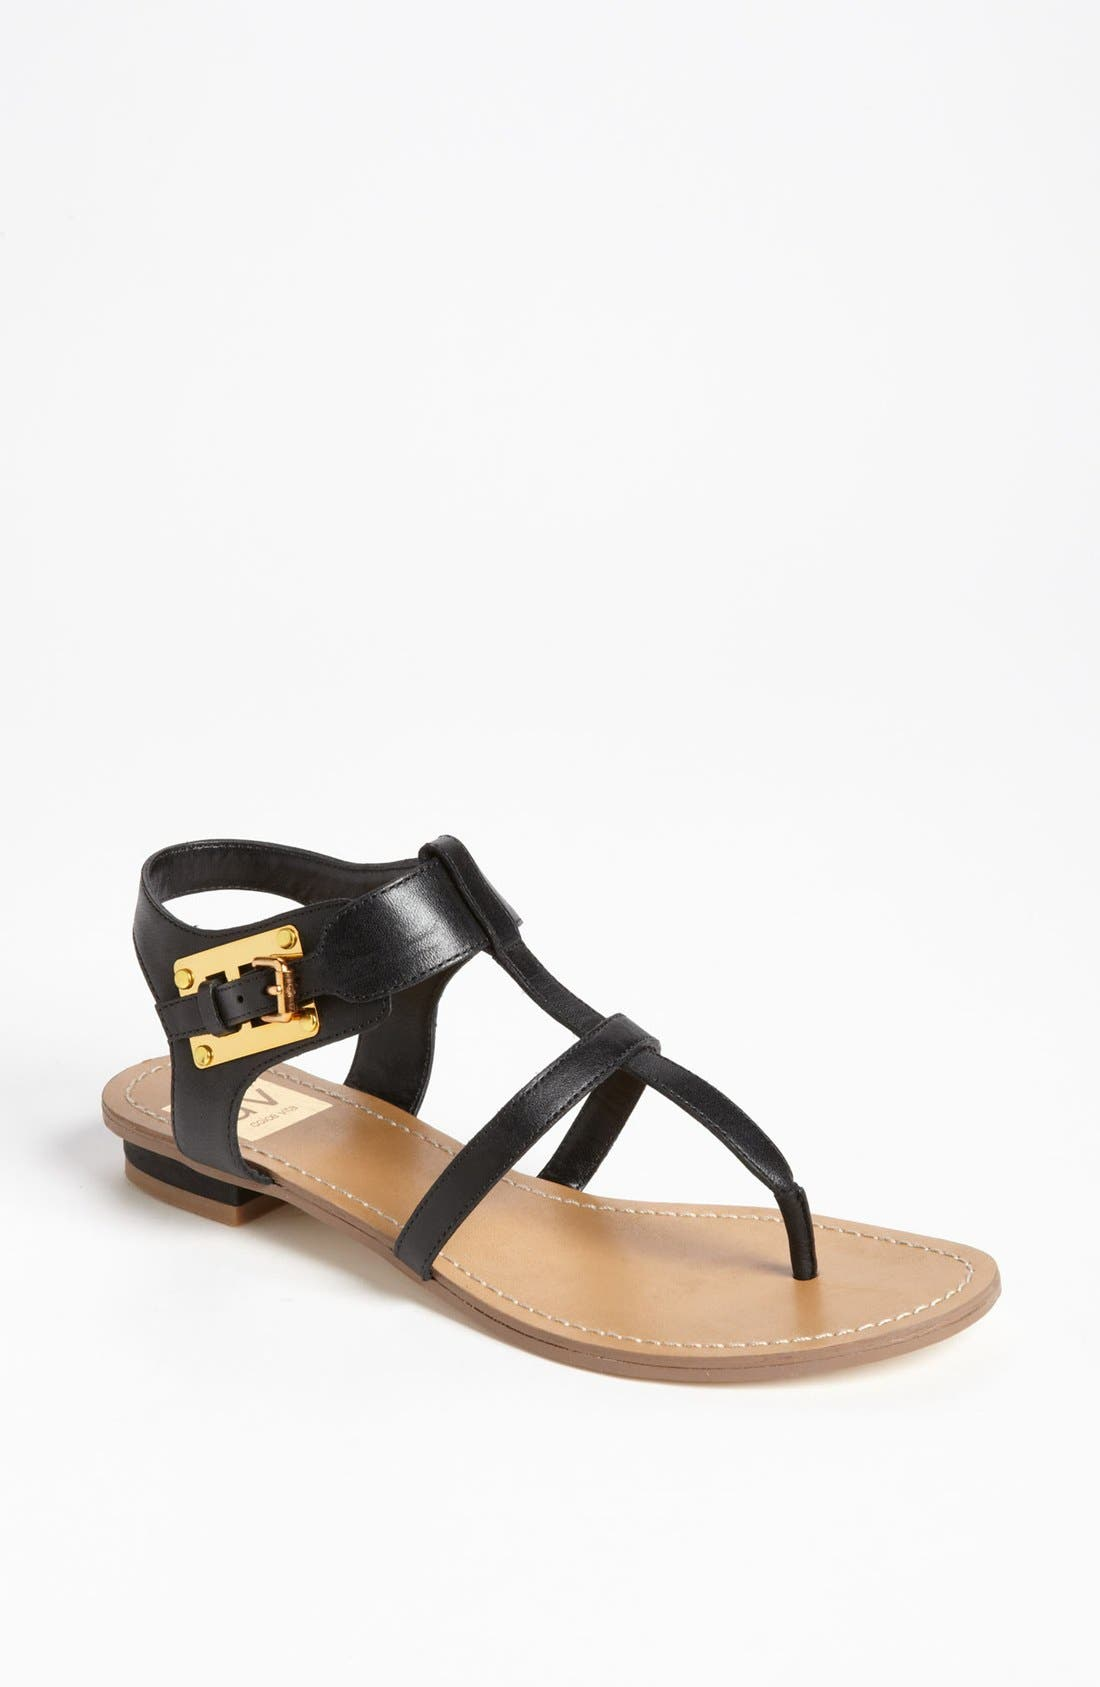 DV by Dolce Vita 'Hani' Sandal,                         Main,                         color, Black